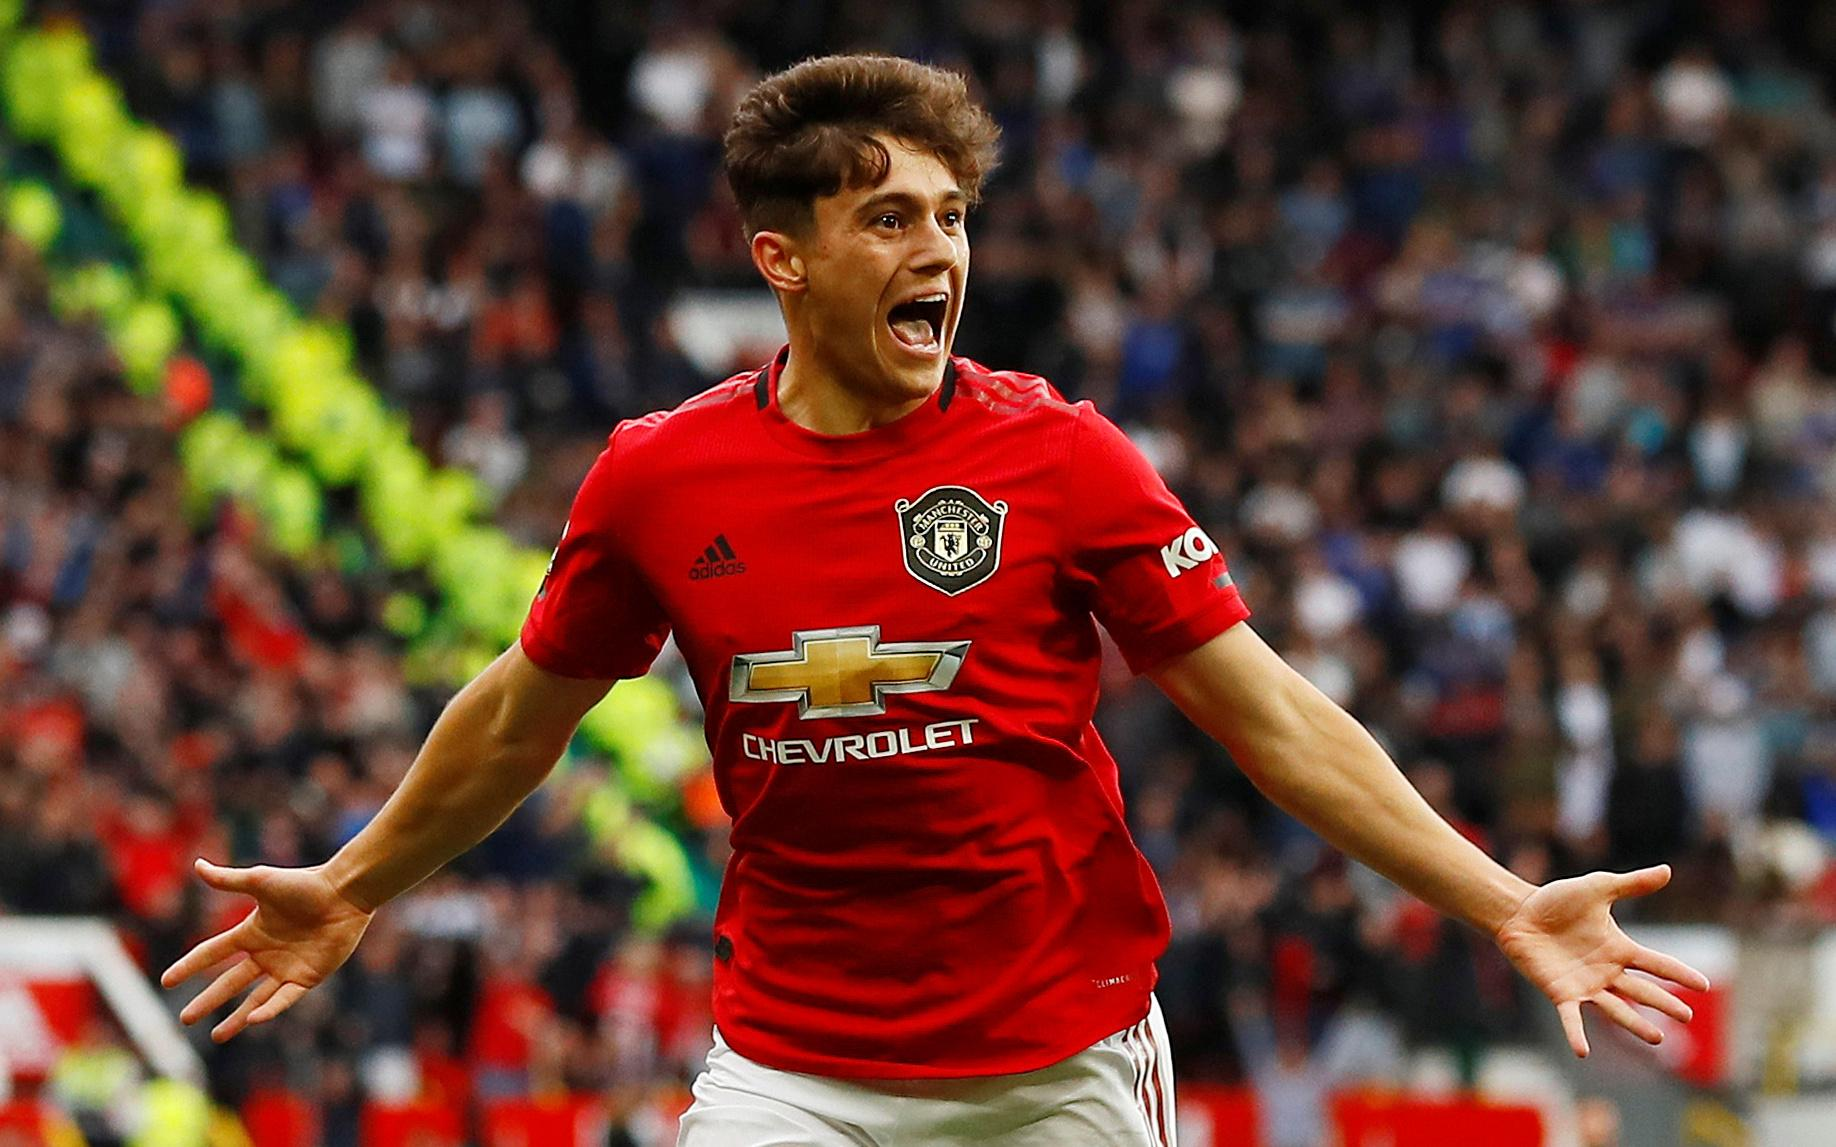 James has earned respect of Man Utd team mates with bright start - Solskjaer